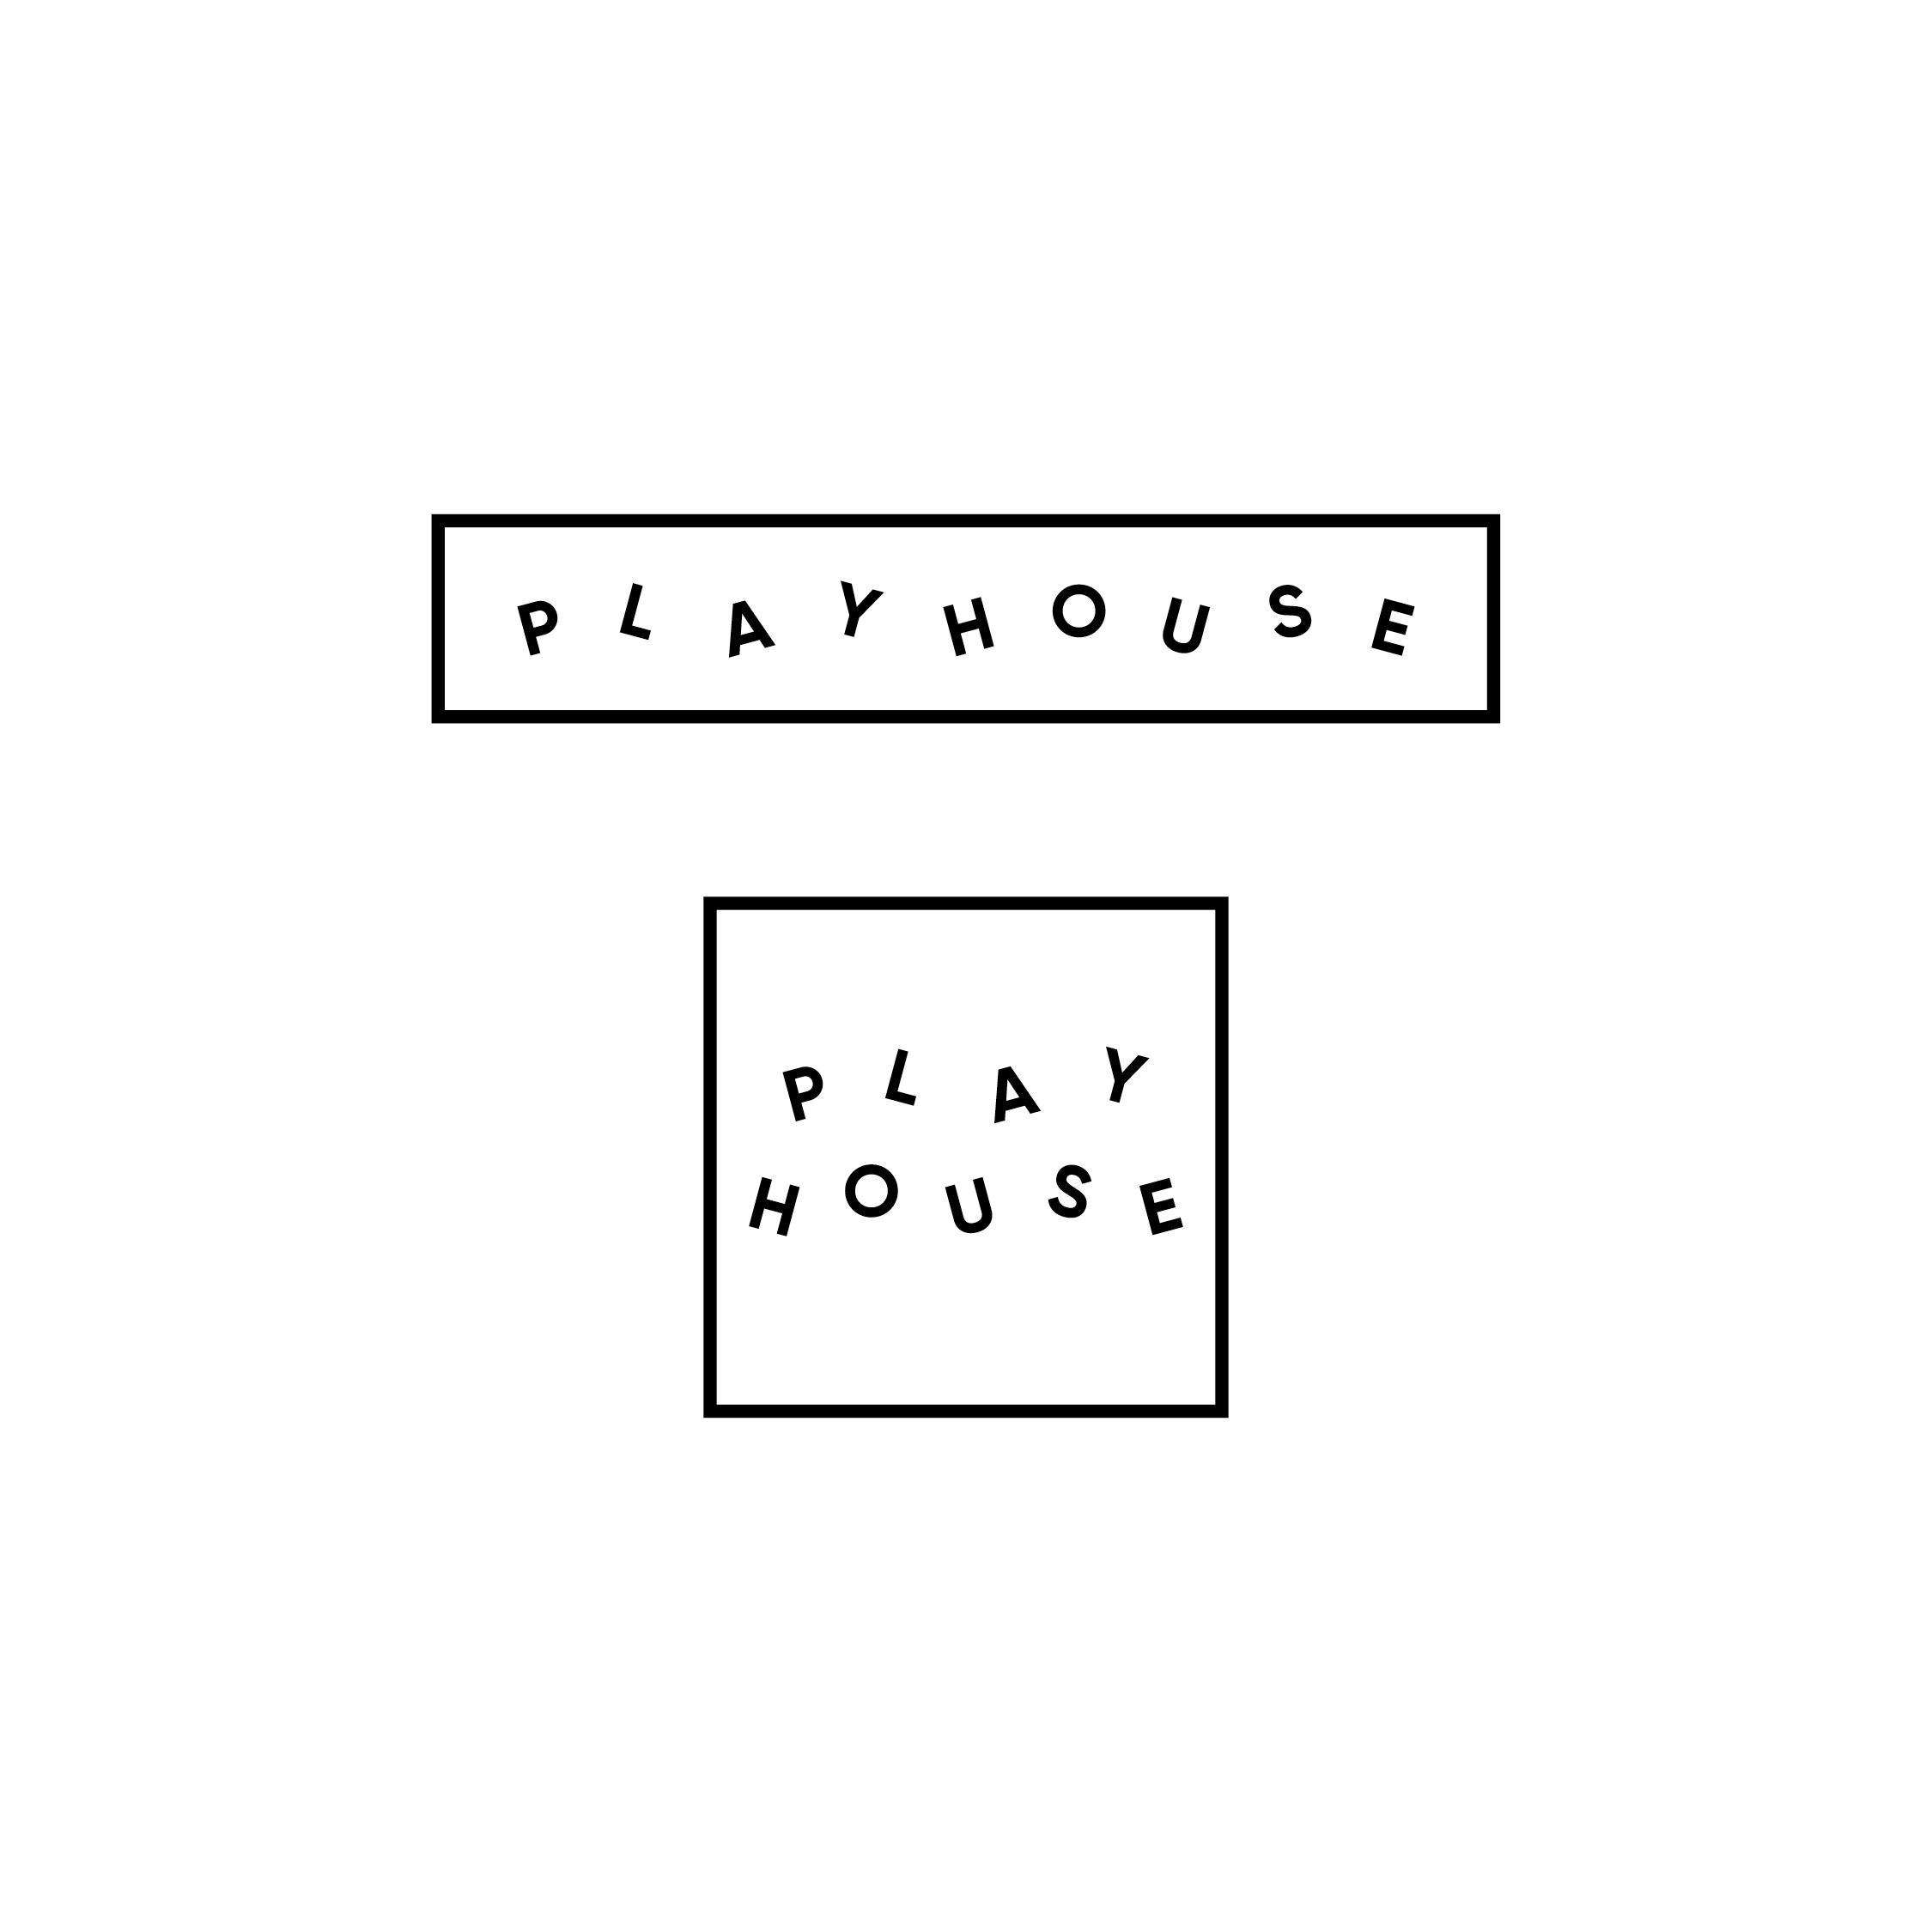 Playhouse design competition alternate logos